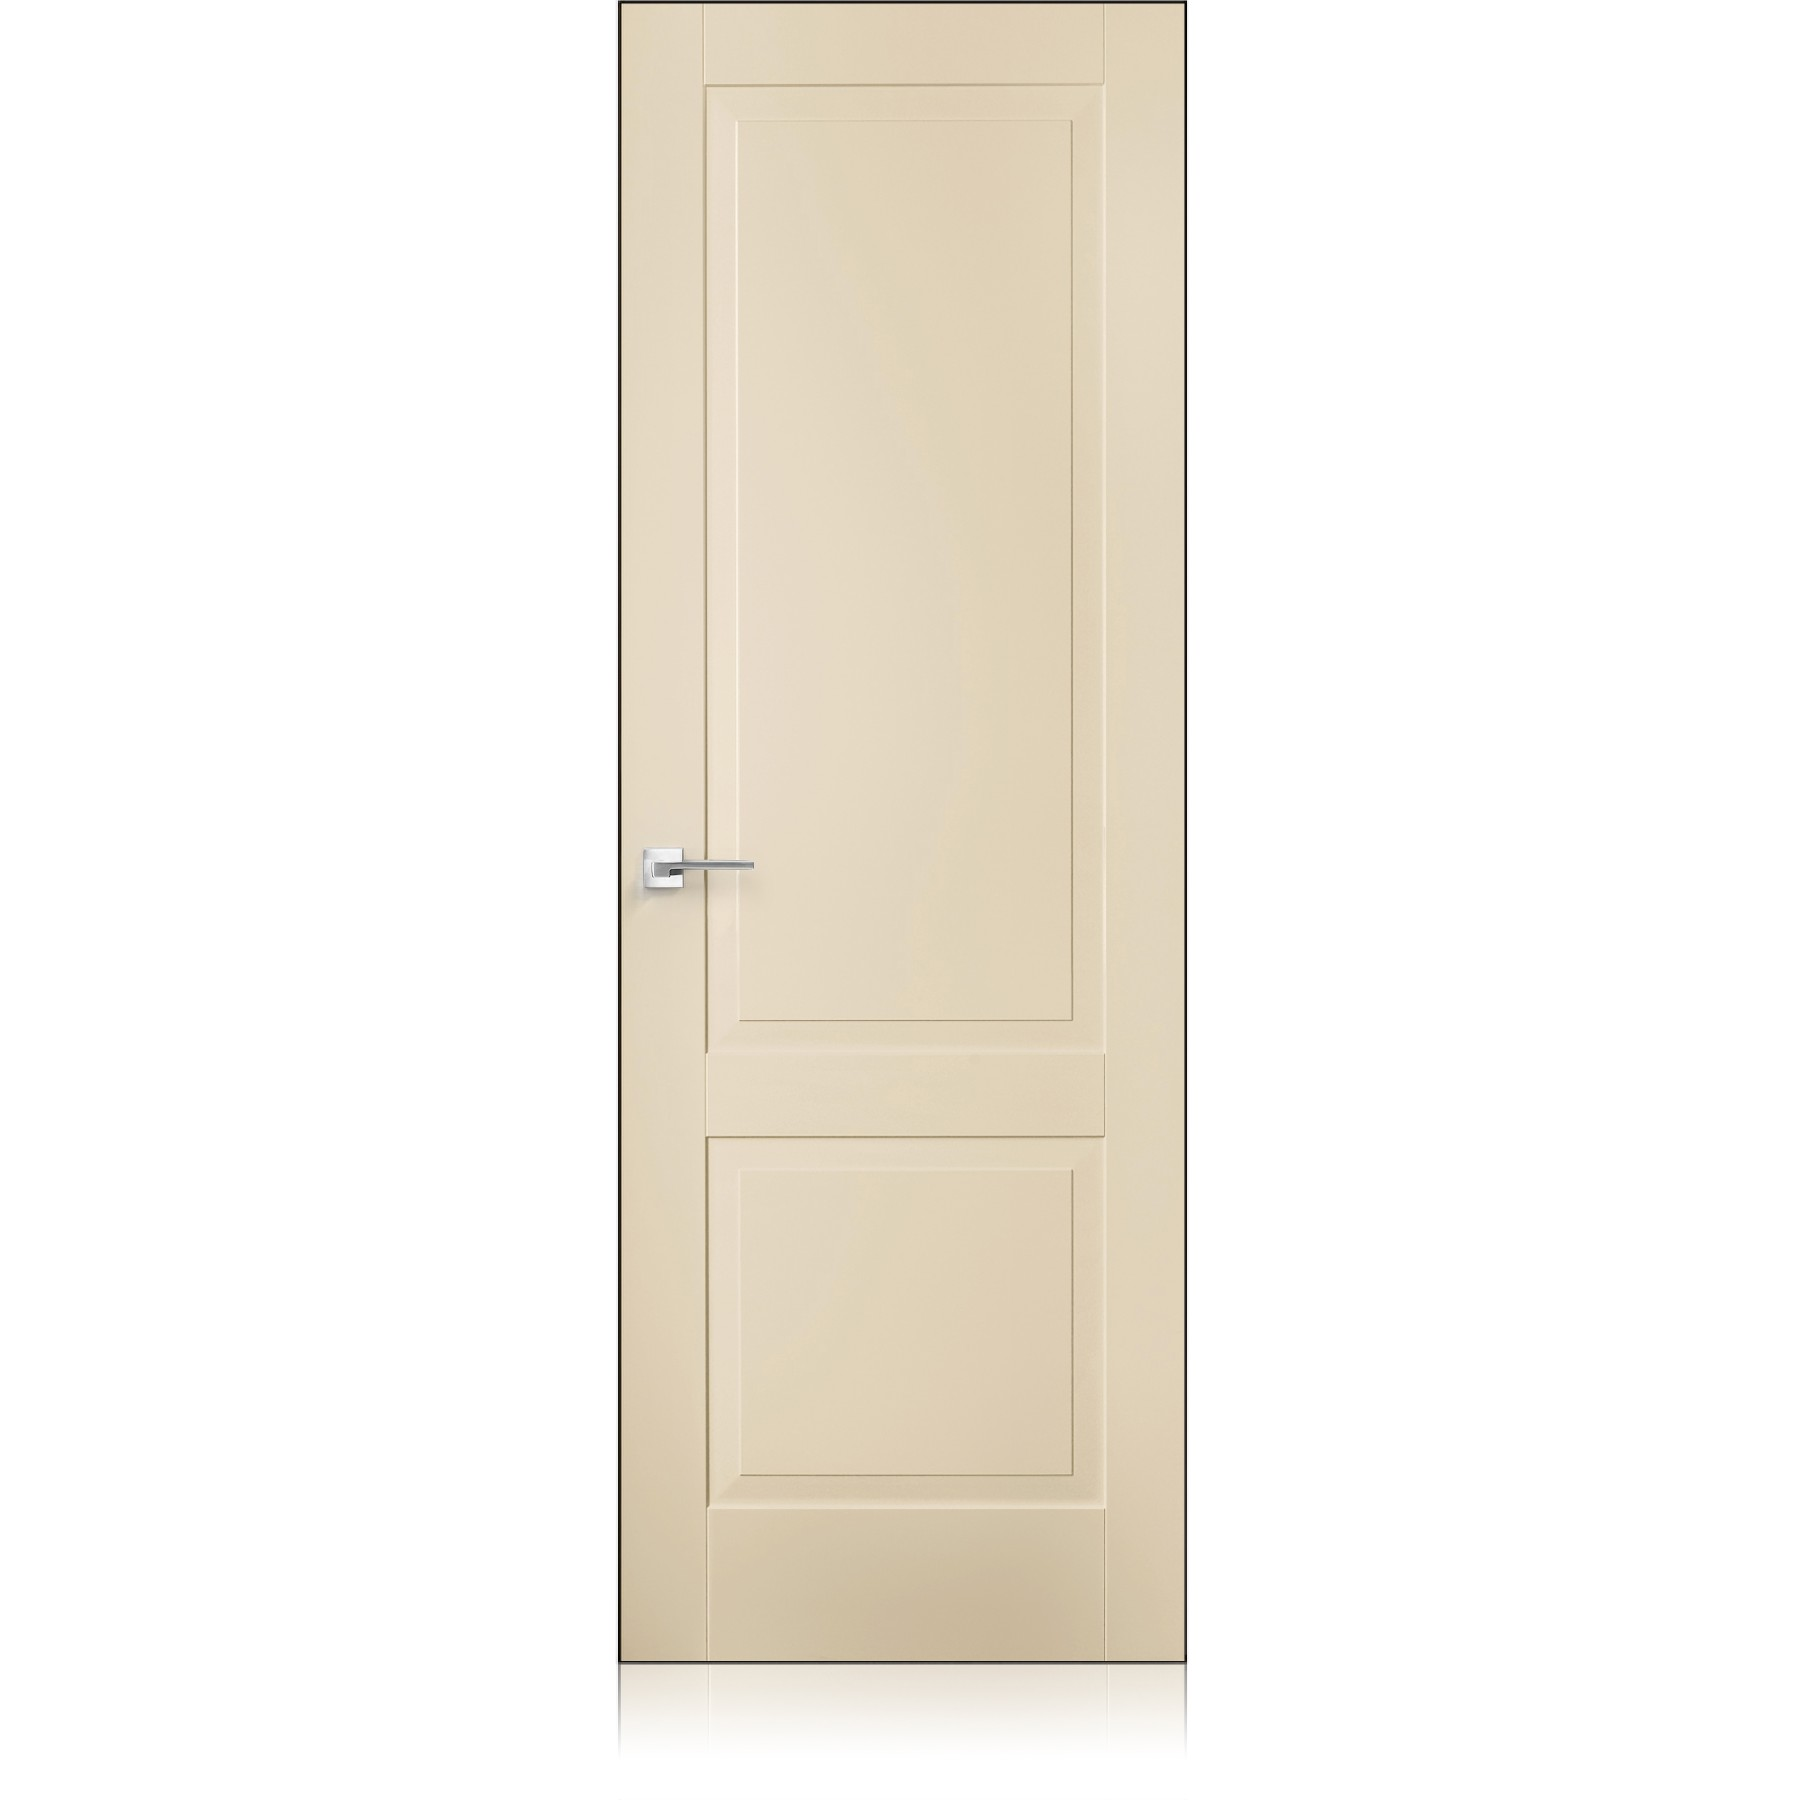 Suite / 6 Zero cremy door